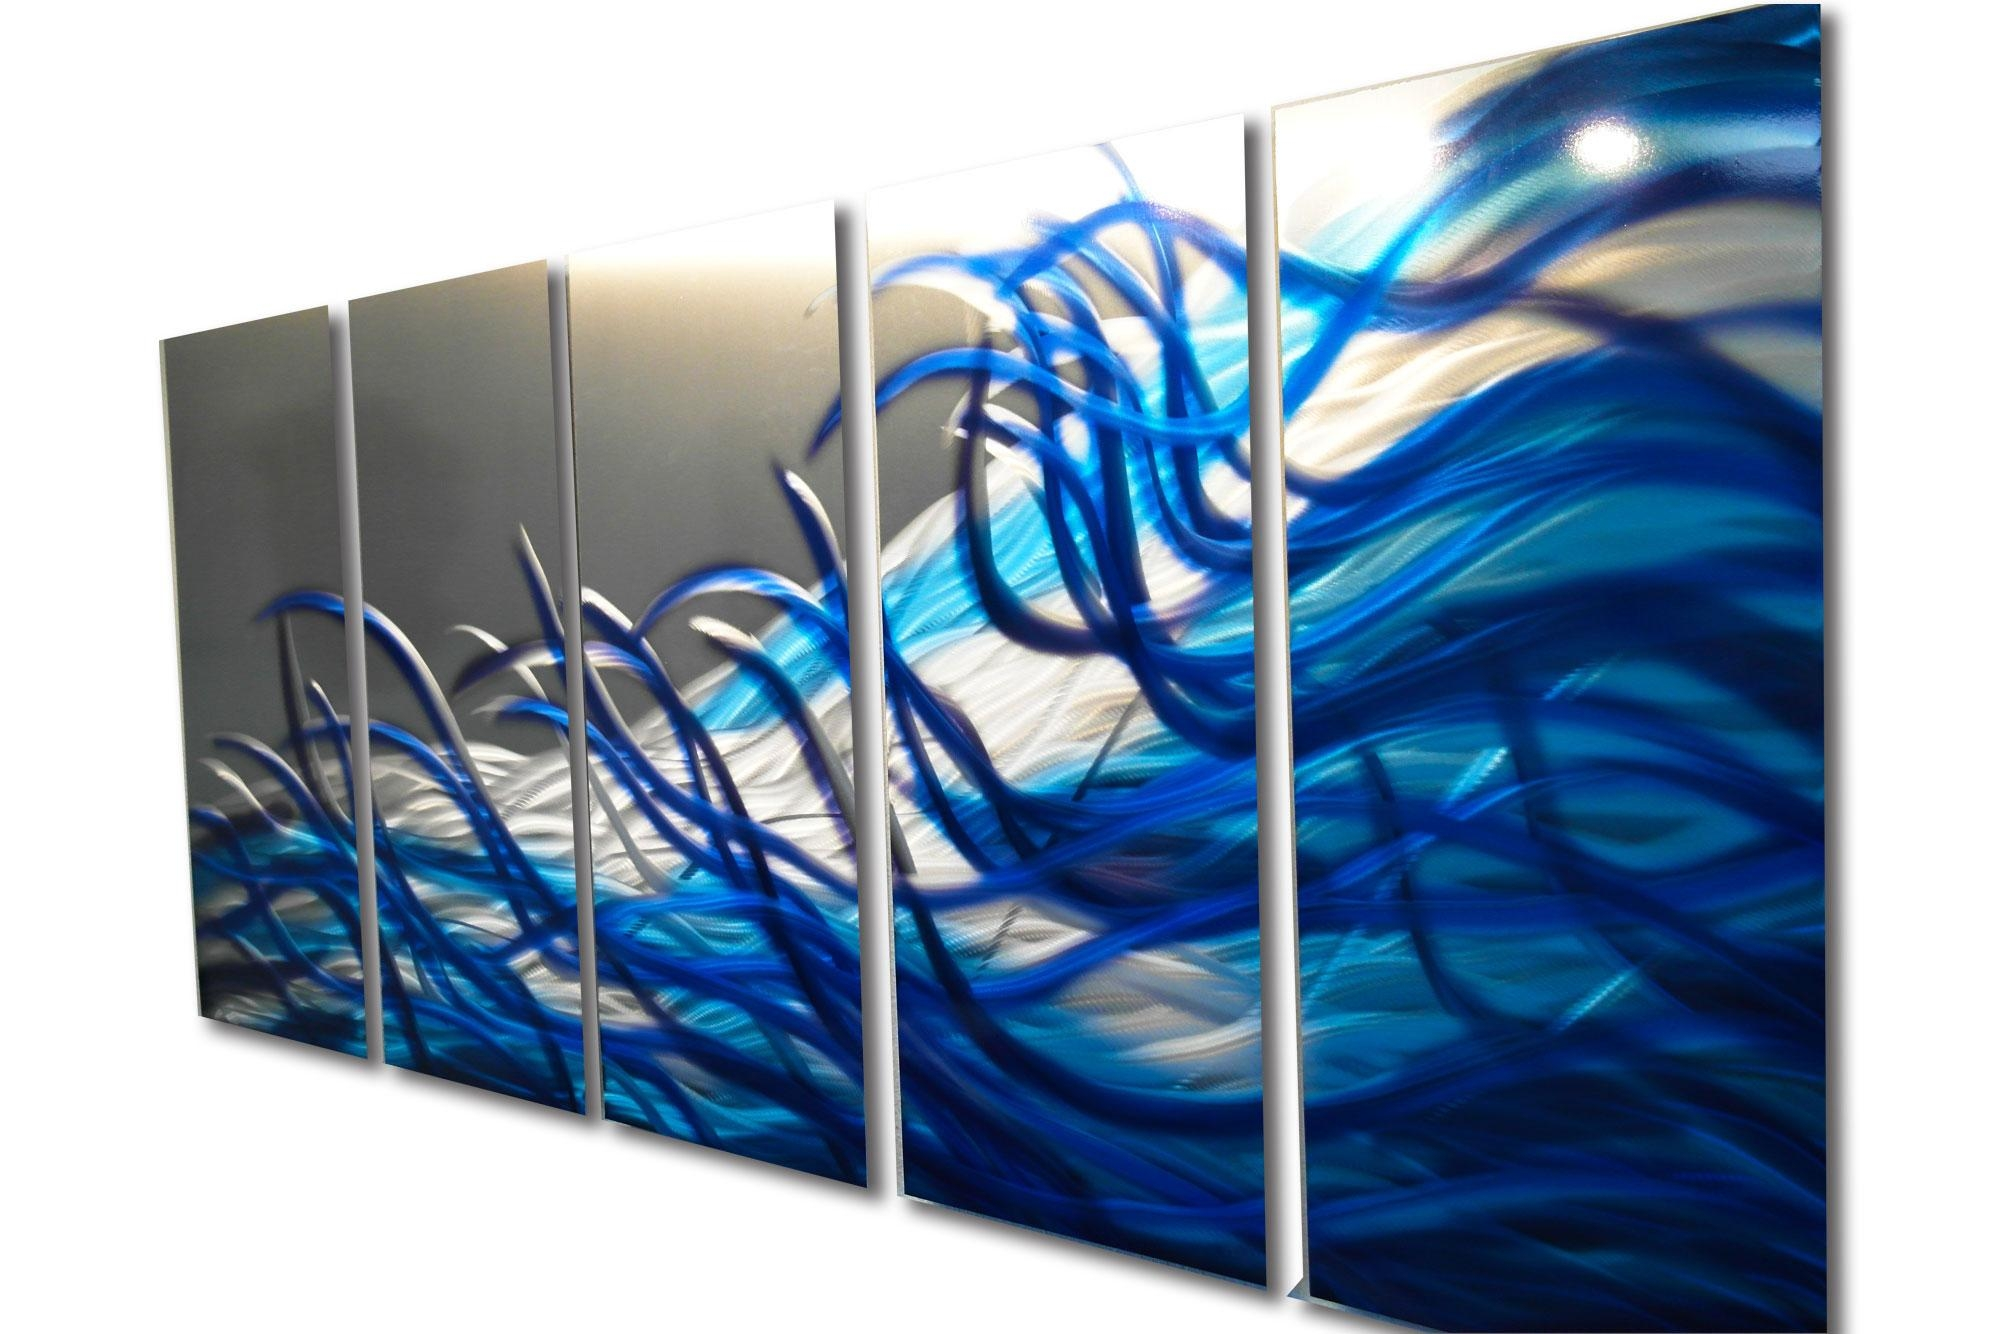 Resonance Blue 36X79  Metal Wall Art Contemporary Modern Decor In Blue And White Wall Art (Image 17 of 20)